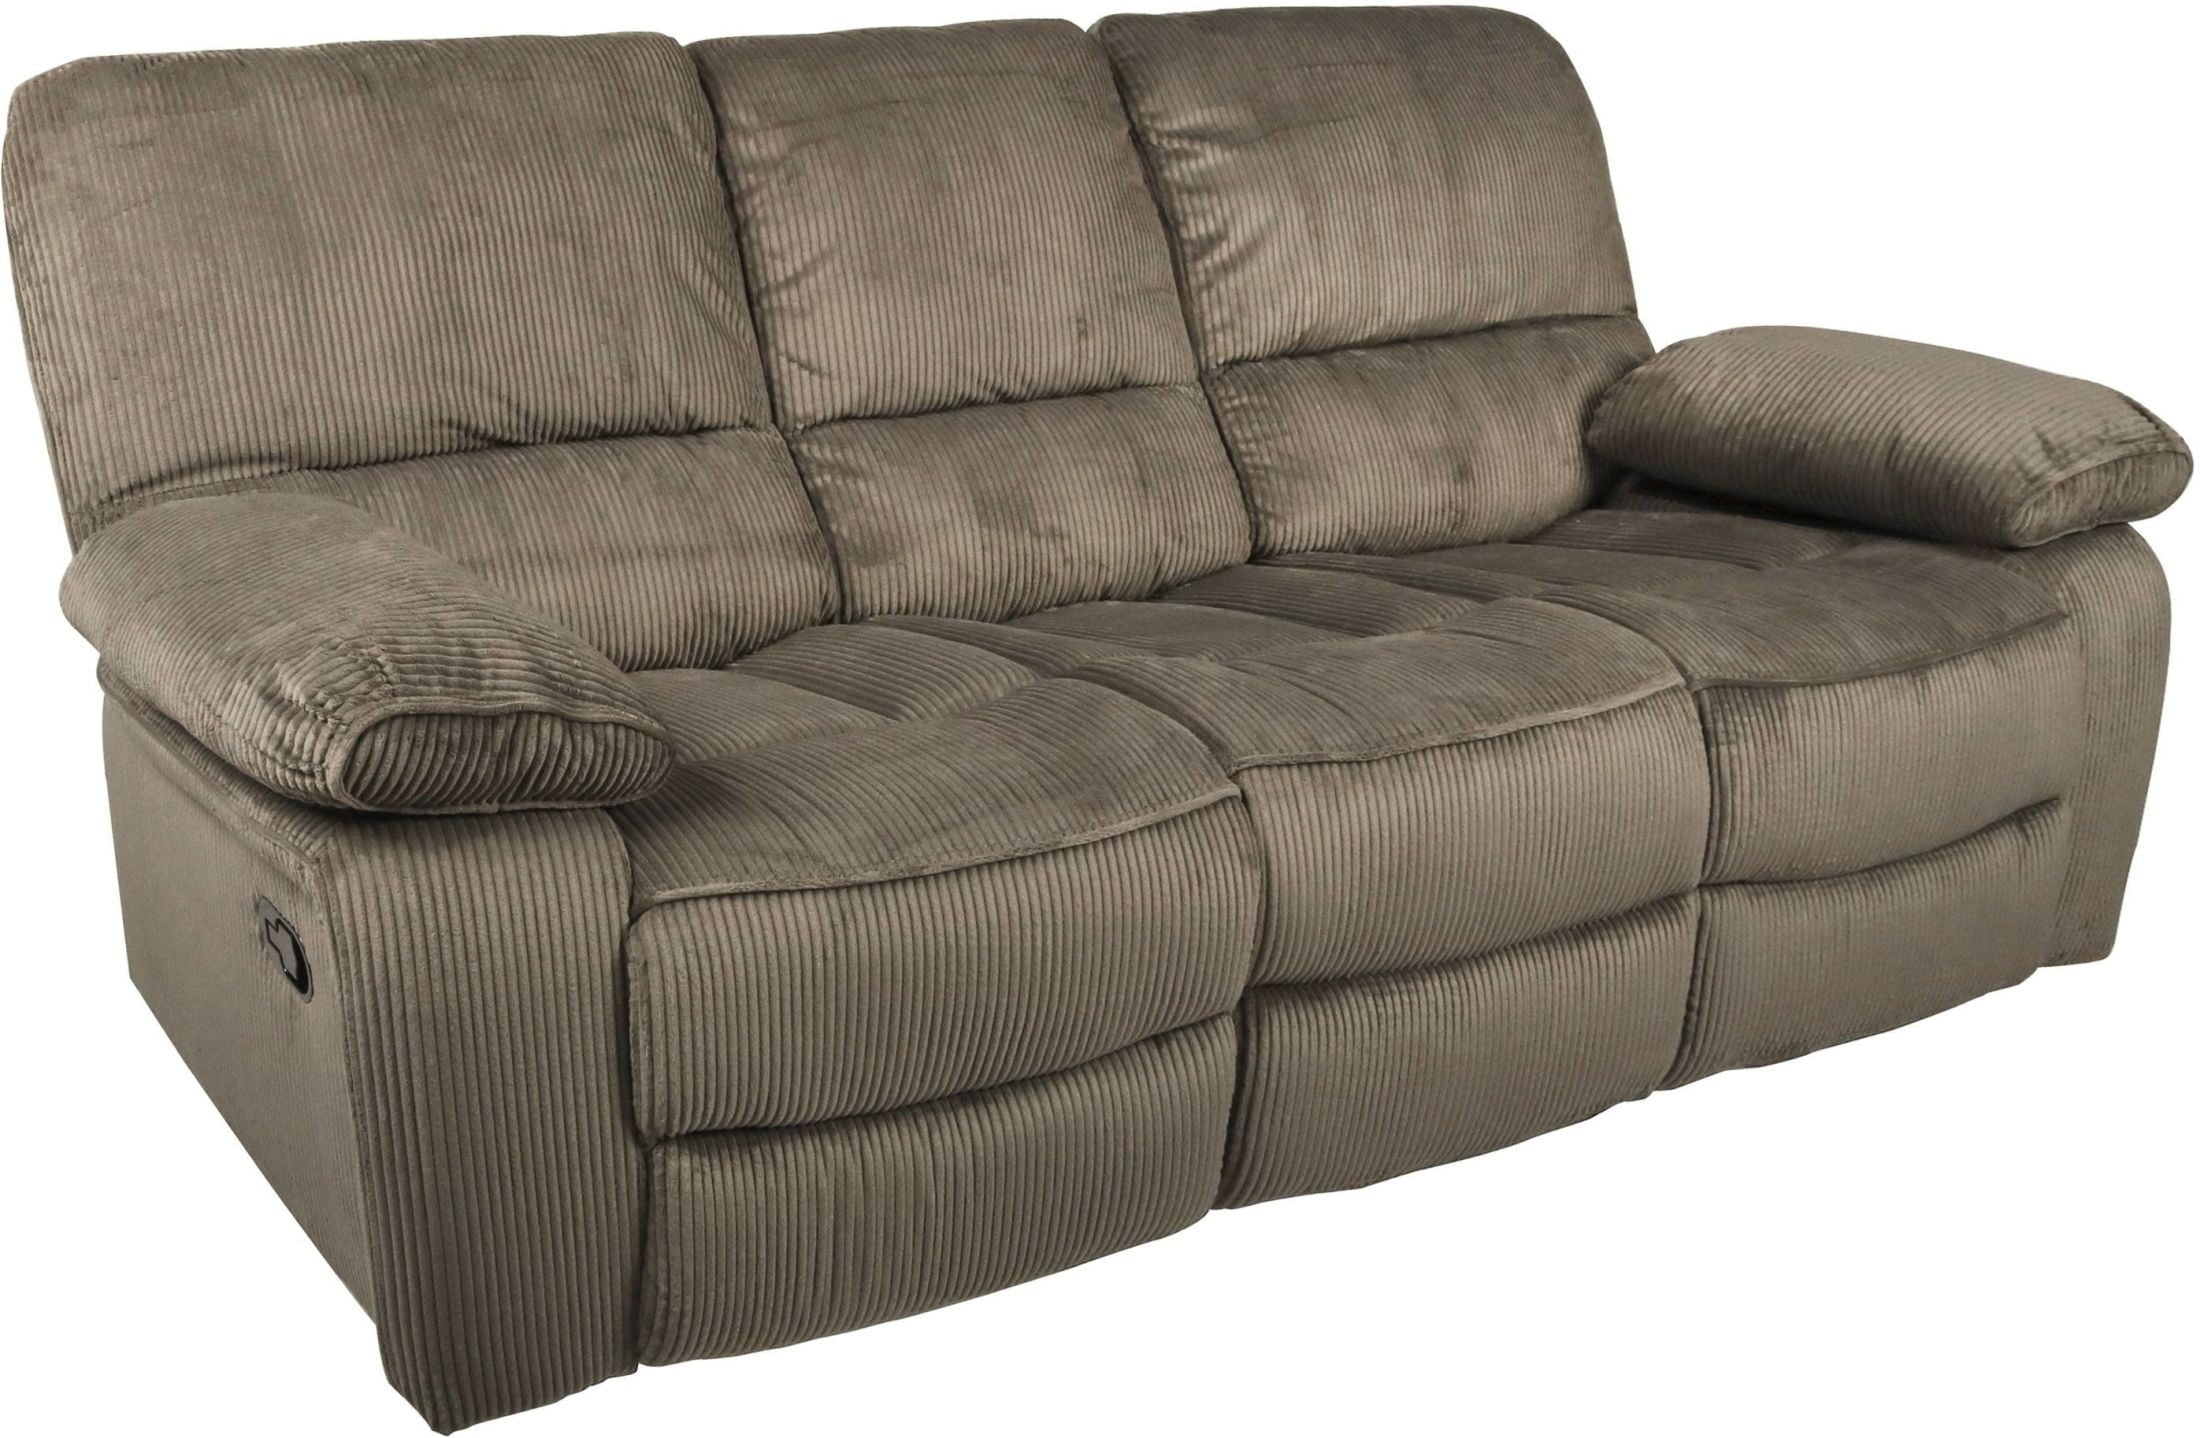 Walker Dove Beige Power Reclining Sofa From New Classic